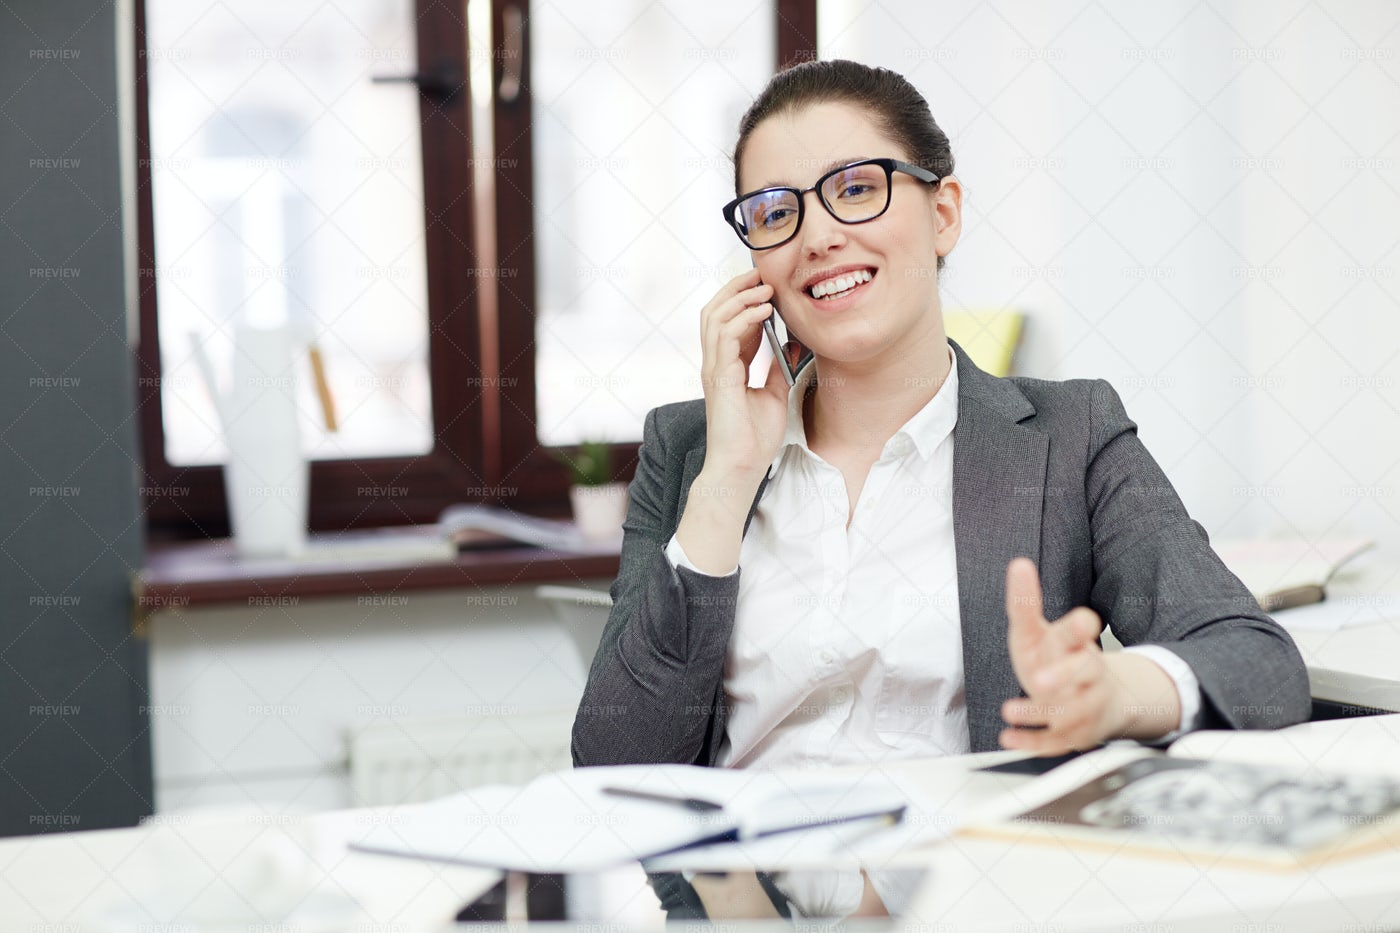 Smiling Businesswoman With Mobile Phone: Stock Photos